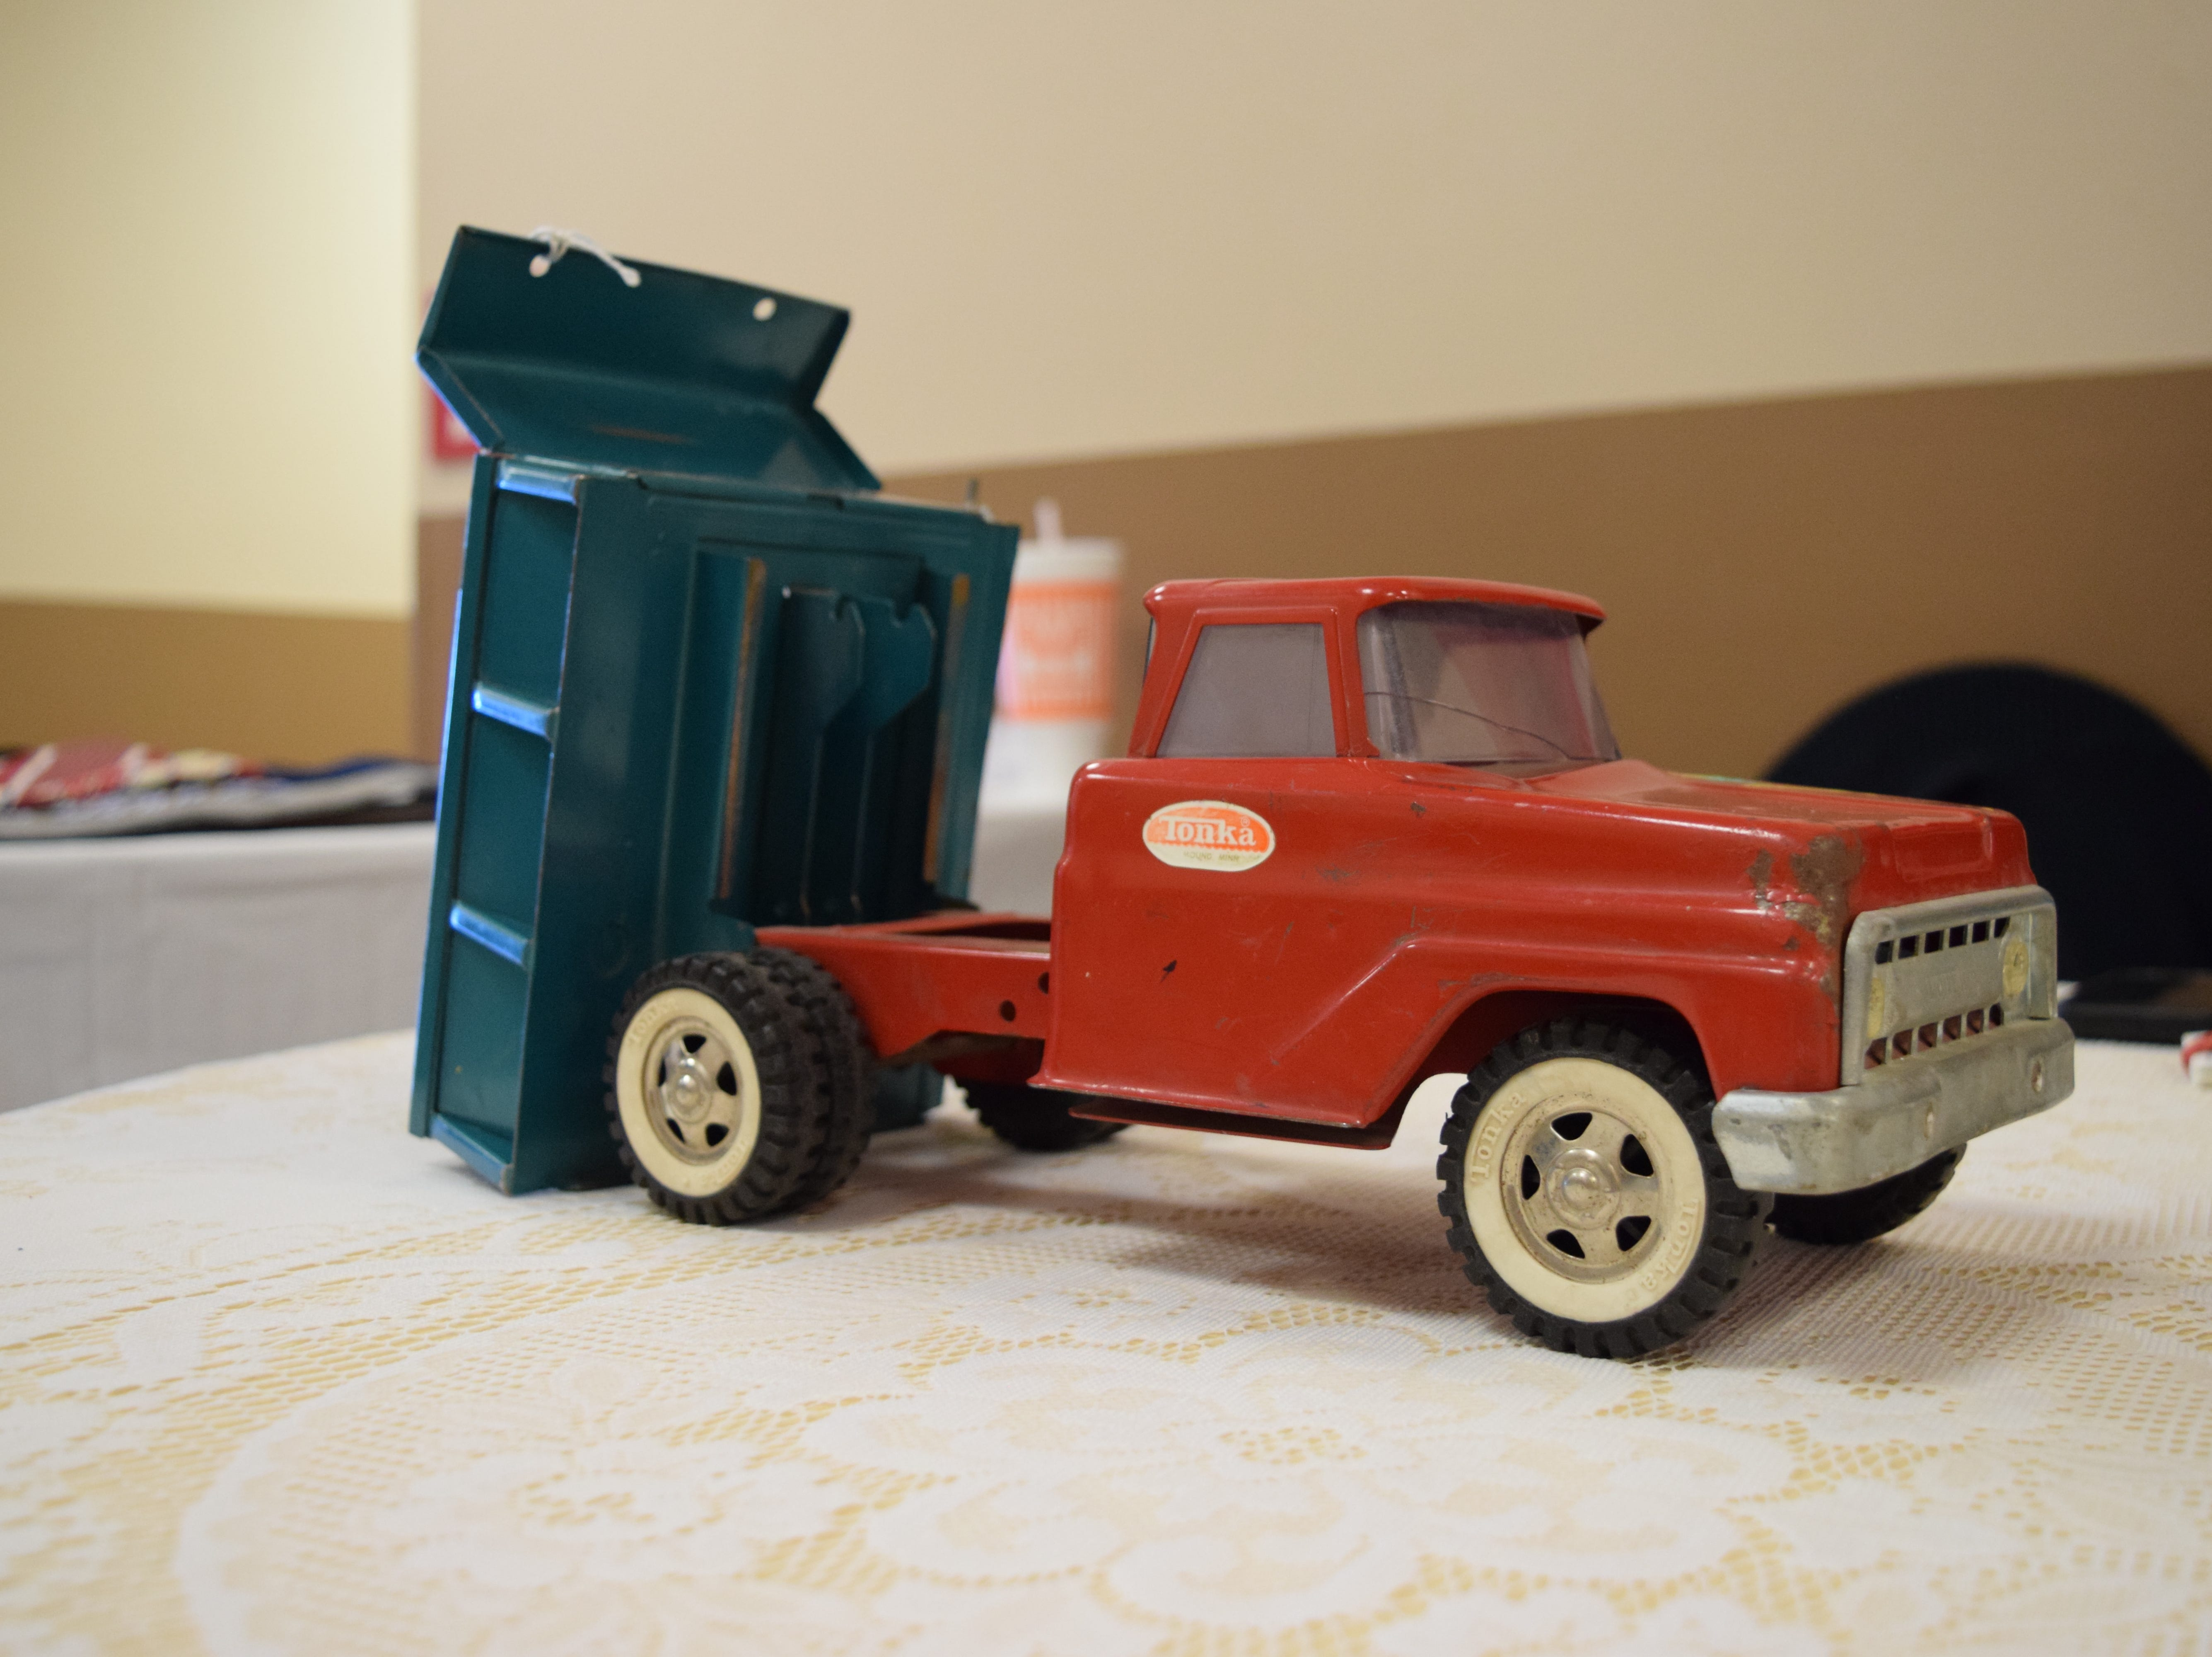 Almost every kid growing up has owned a Tonka toy truck. This red and blue dump truck is circa 1960s and is made of pressed steel. It is said that Tonka benefited from the end of World War II because there was an excess supply of steel, which they could use to craft their trucks. — Antiques Treasures Show at the Farm and Ranch Heritage Museum, Jan. 26, 2019.